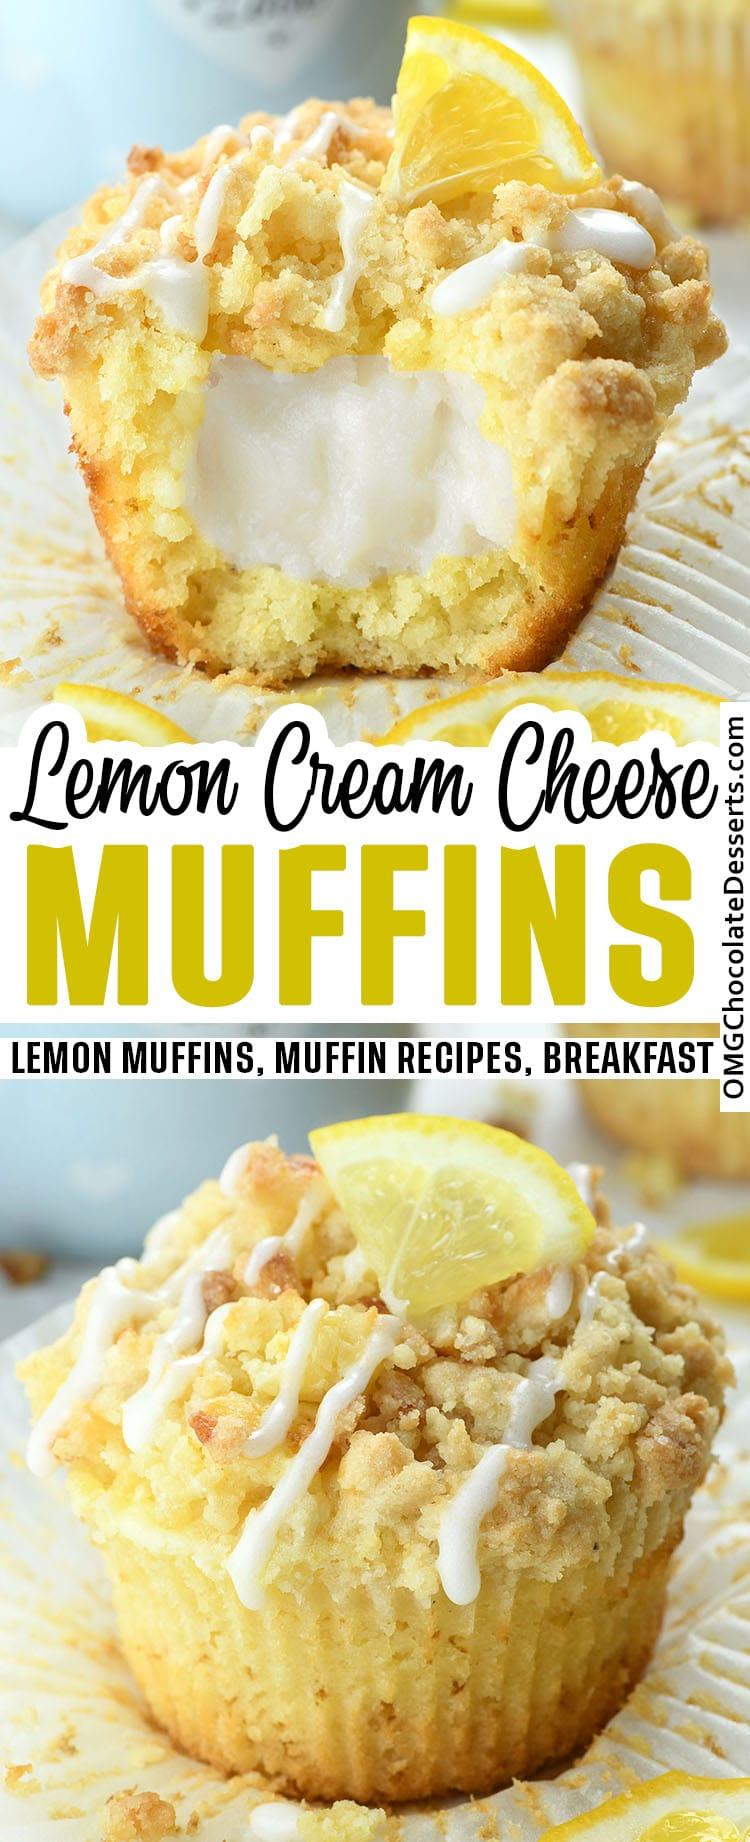 Two different images of Lemon Muffins and title text between the images.